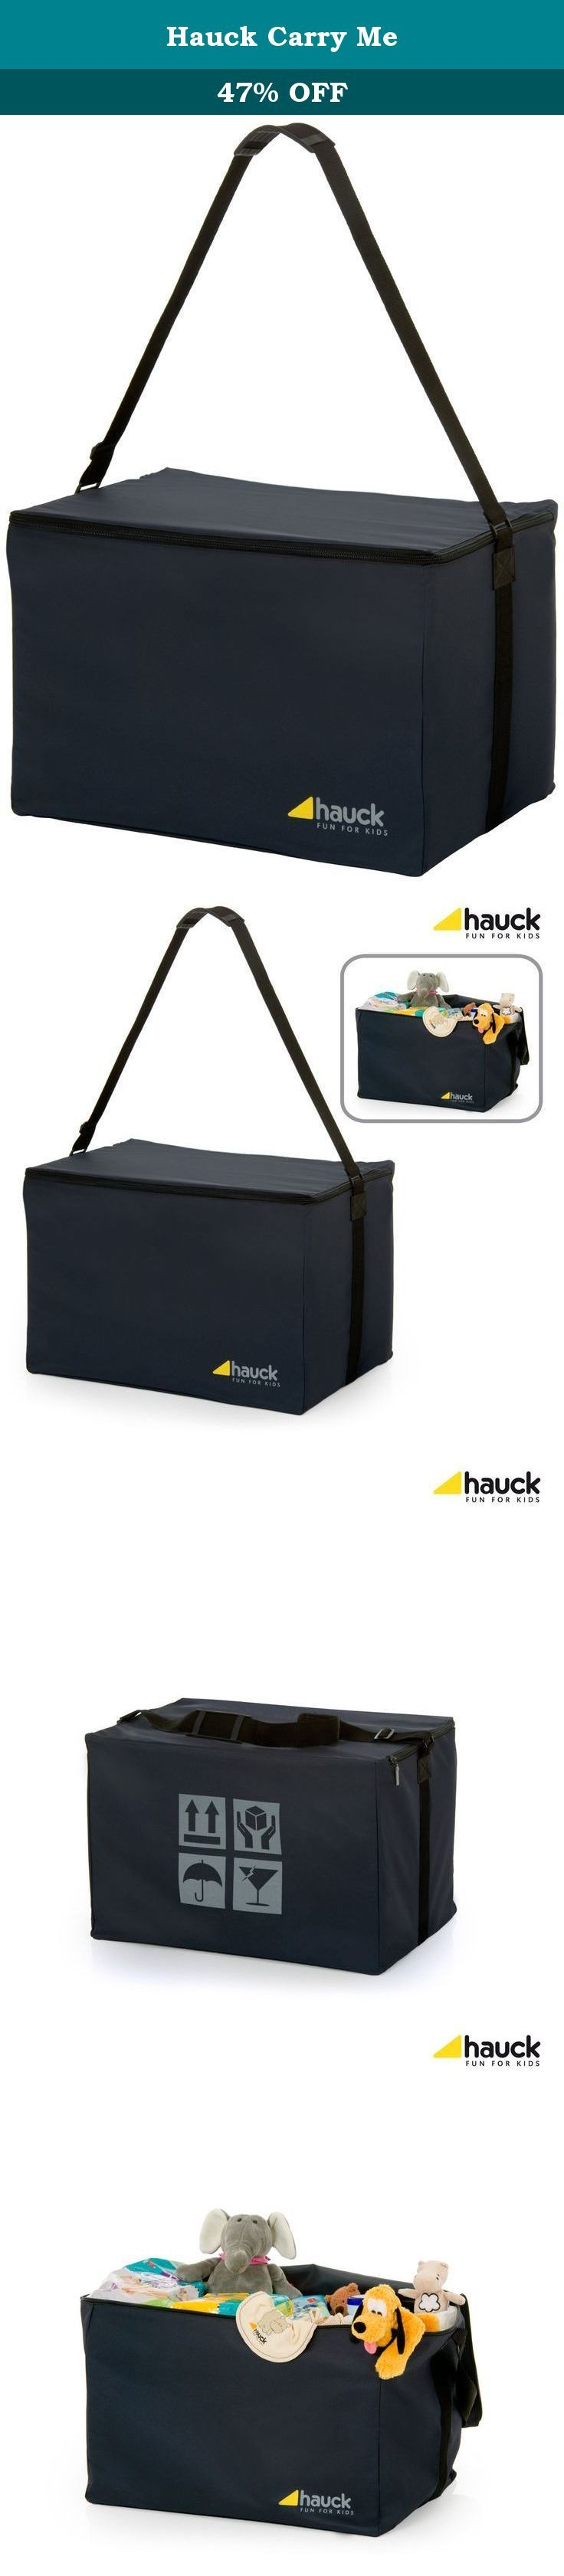 Hauck Carry Me. Hauck Carry me is ideal for family travel, keeping all your baby needs in one place.